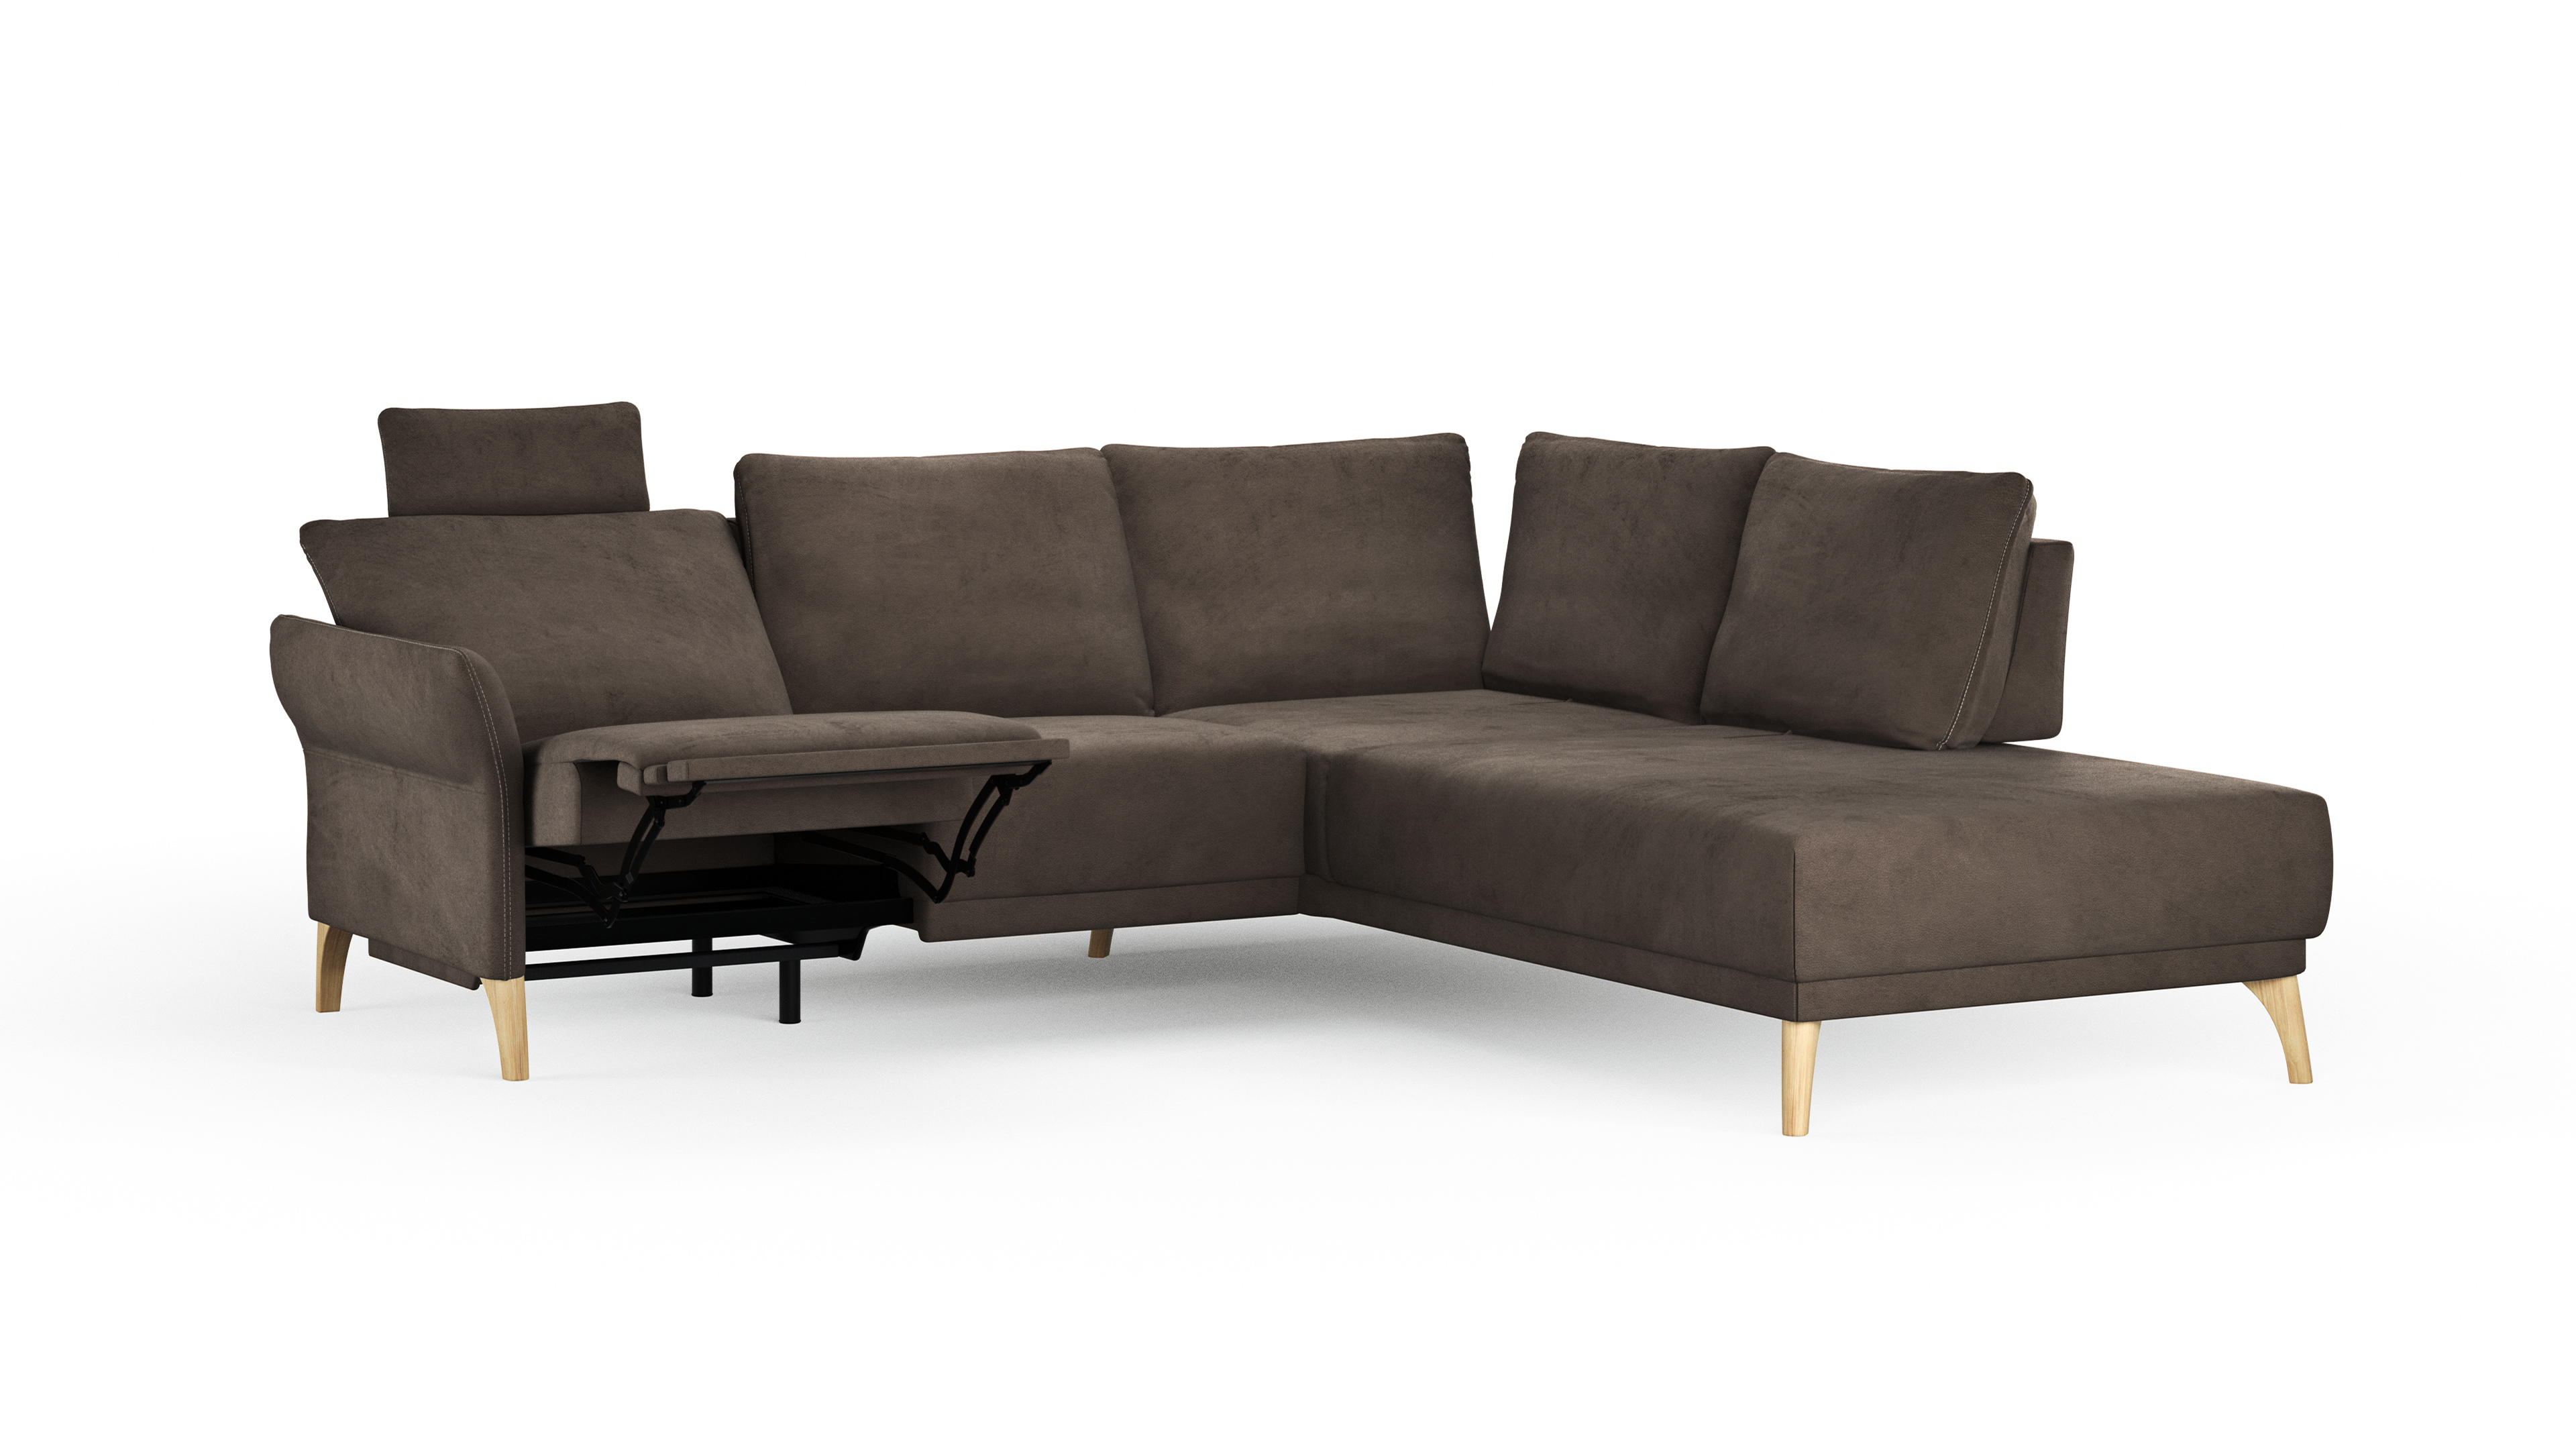 Global Comfort Ecksofa Rosario freisteller 4 102537 | Homepoet